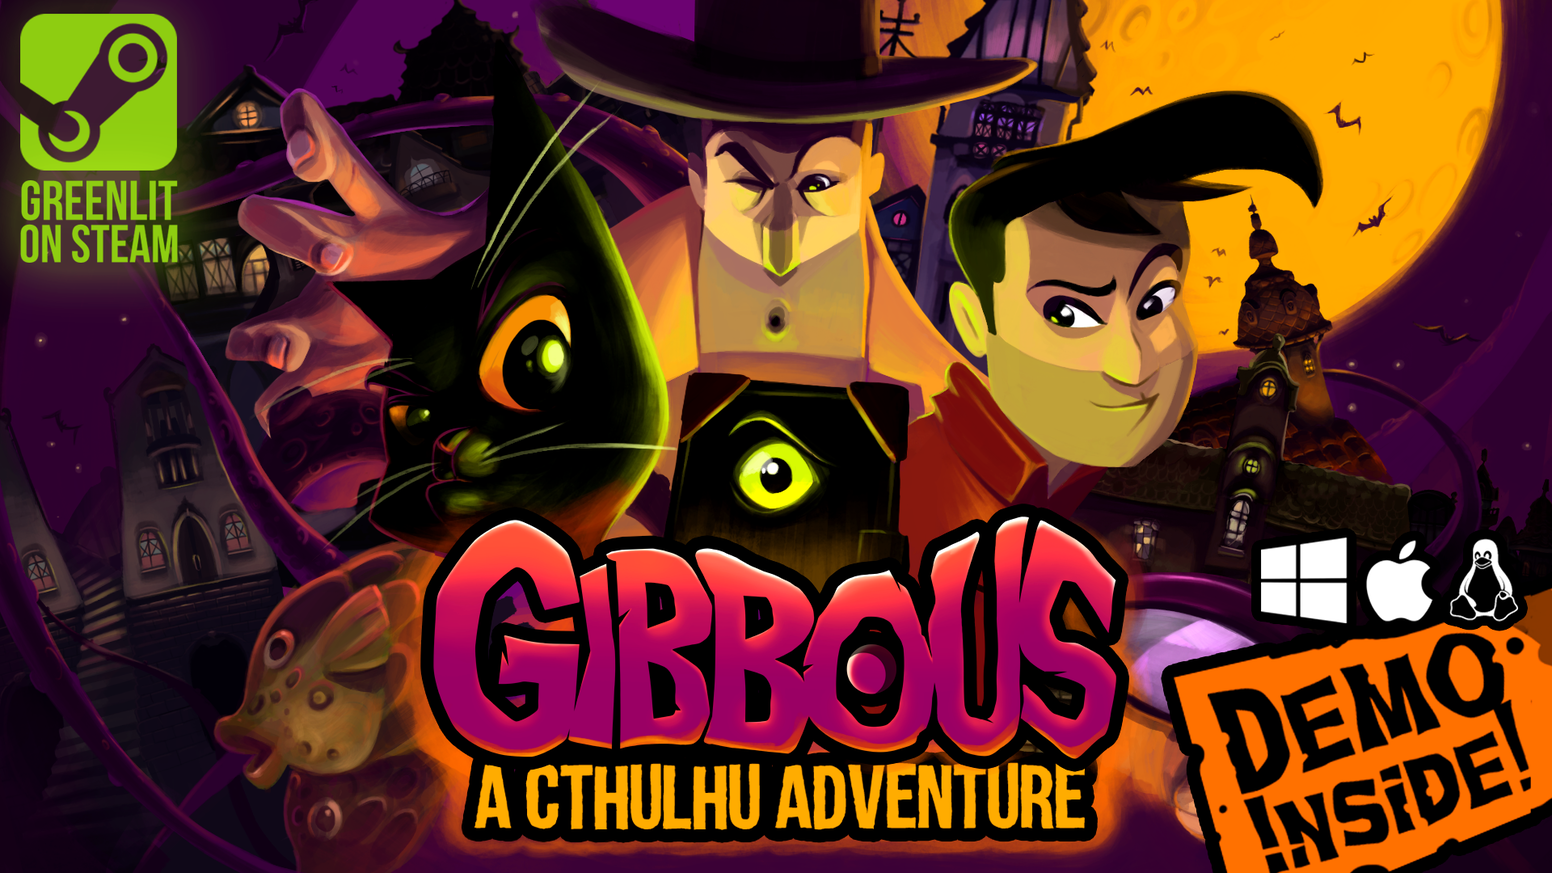 Crazy cultists. Cthulhu. A talking cat. Play as three protagonists and explore a lushly rendered Lovecraftian world. A comedy cosmic horror adventure made in Transylvania!